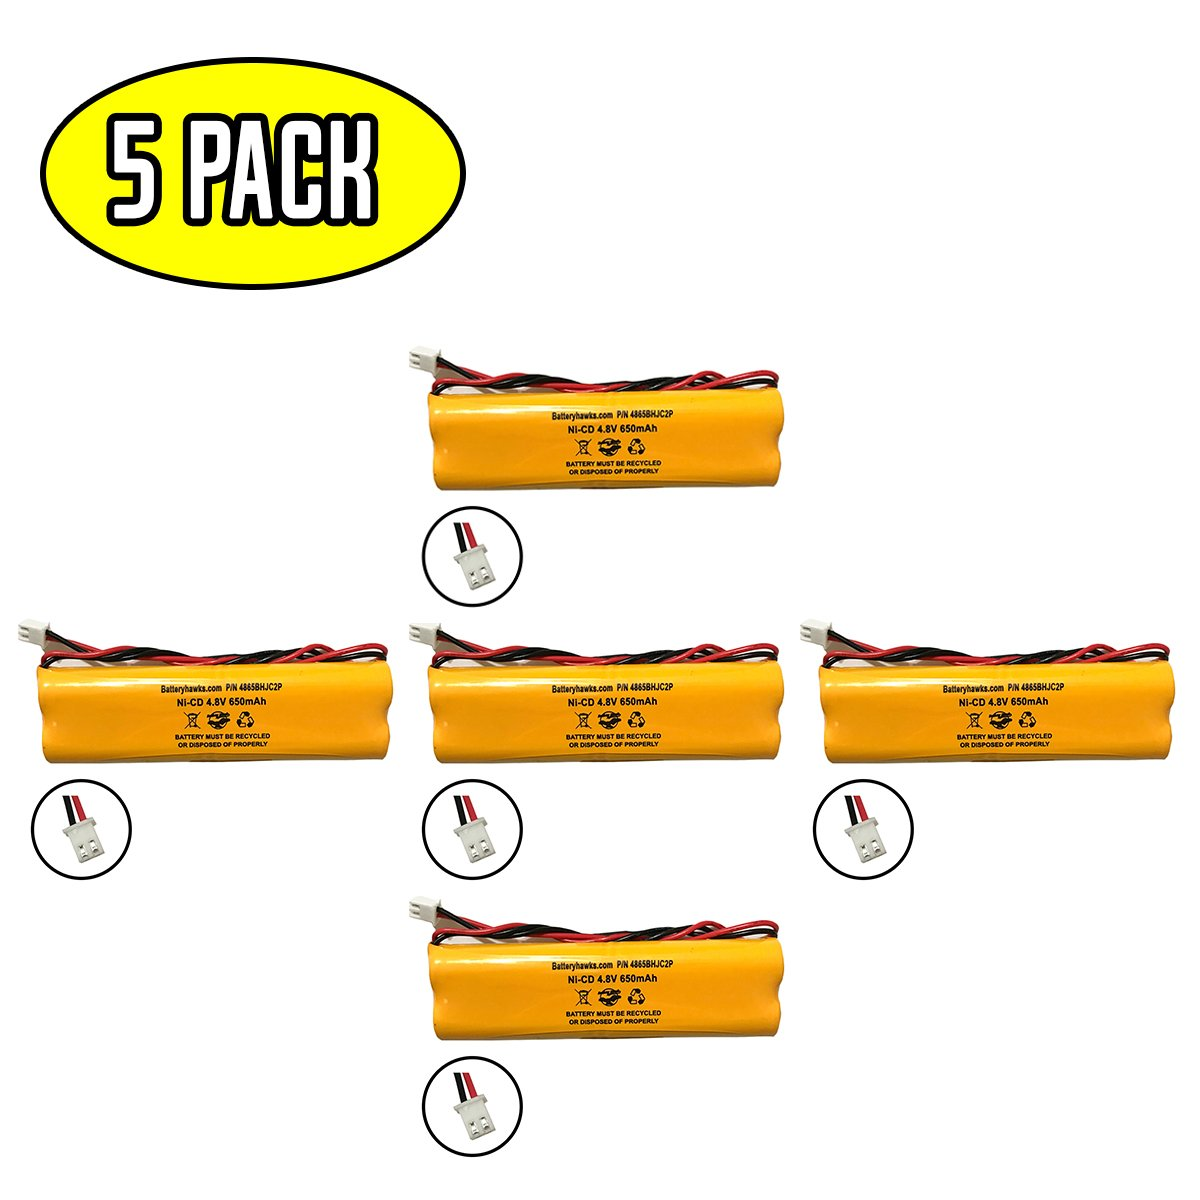 (5 Pack) Unitech Dual-Lite 0120859 Ni-CD AA 650mAh All Fit E1021R LITHONIA D-AA650Bx4 4.8V EJW-NI-CAD 800mah BYD D-AA650B-4 Exit Sign Emergency Light NiCad Battery Pack Replacement by Batteryhawk, LLC